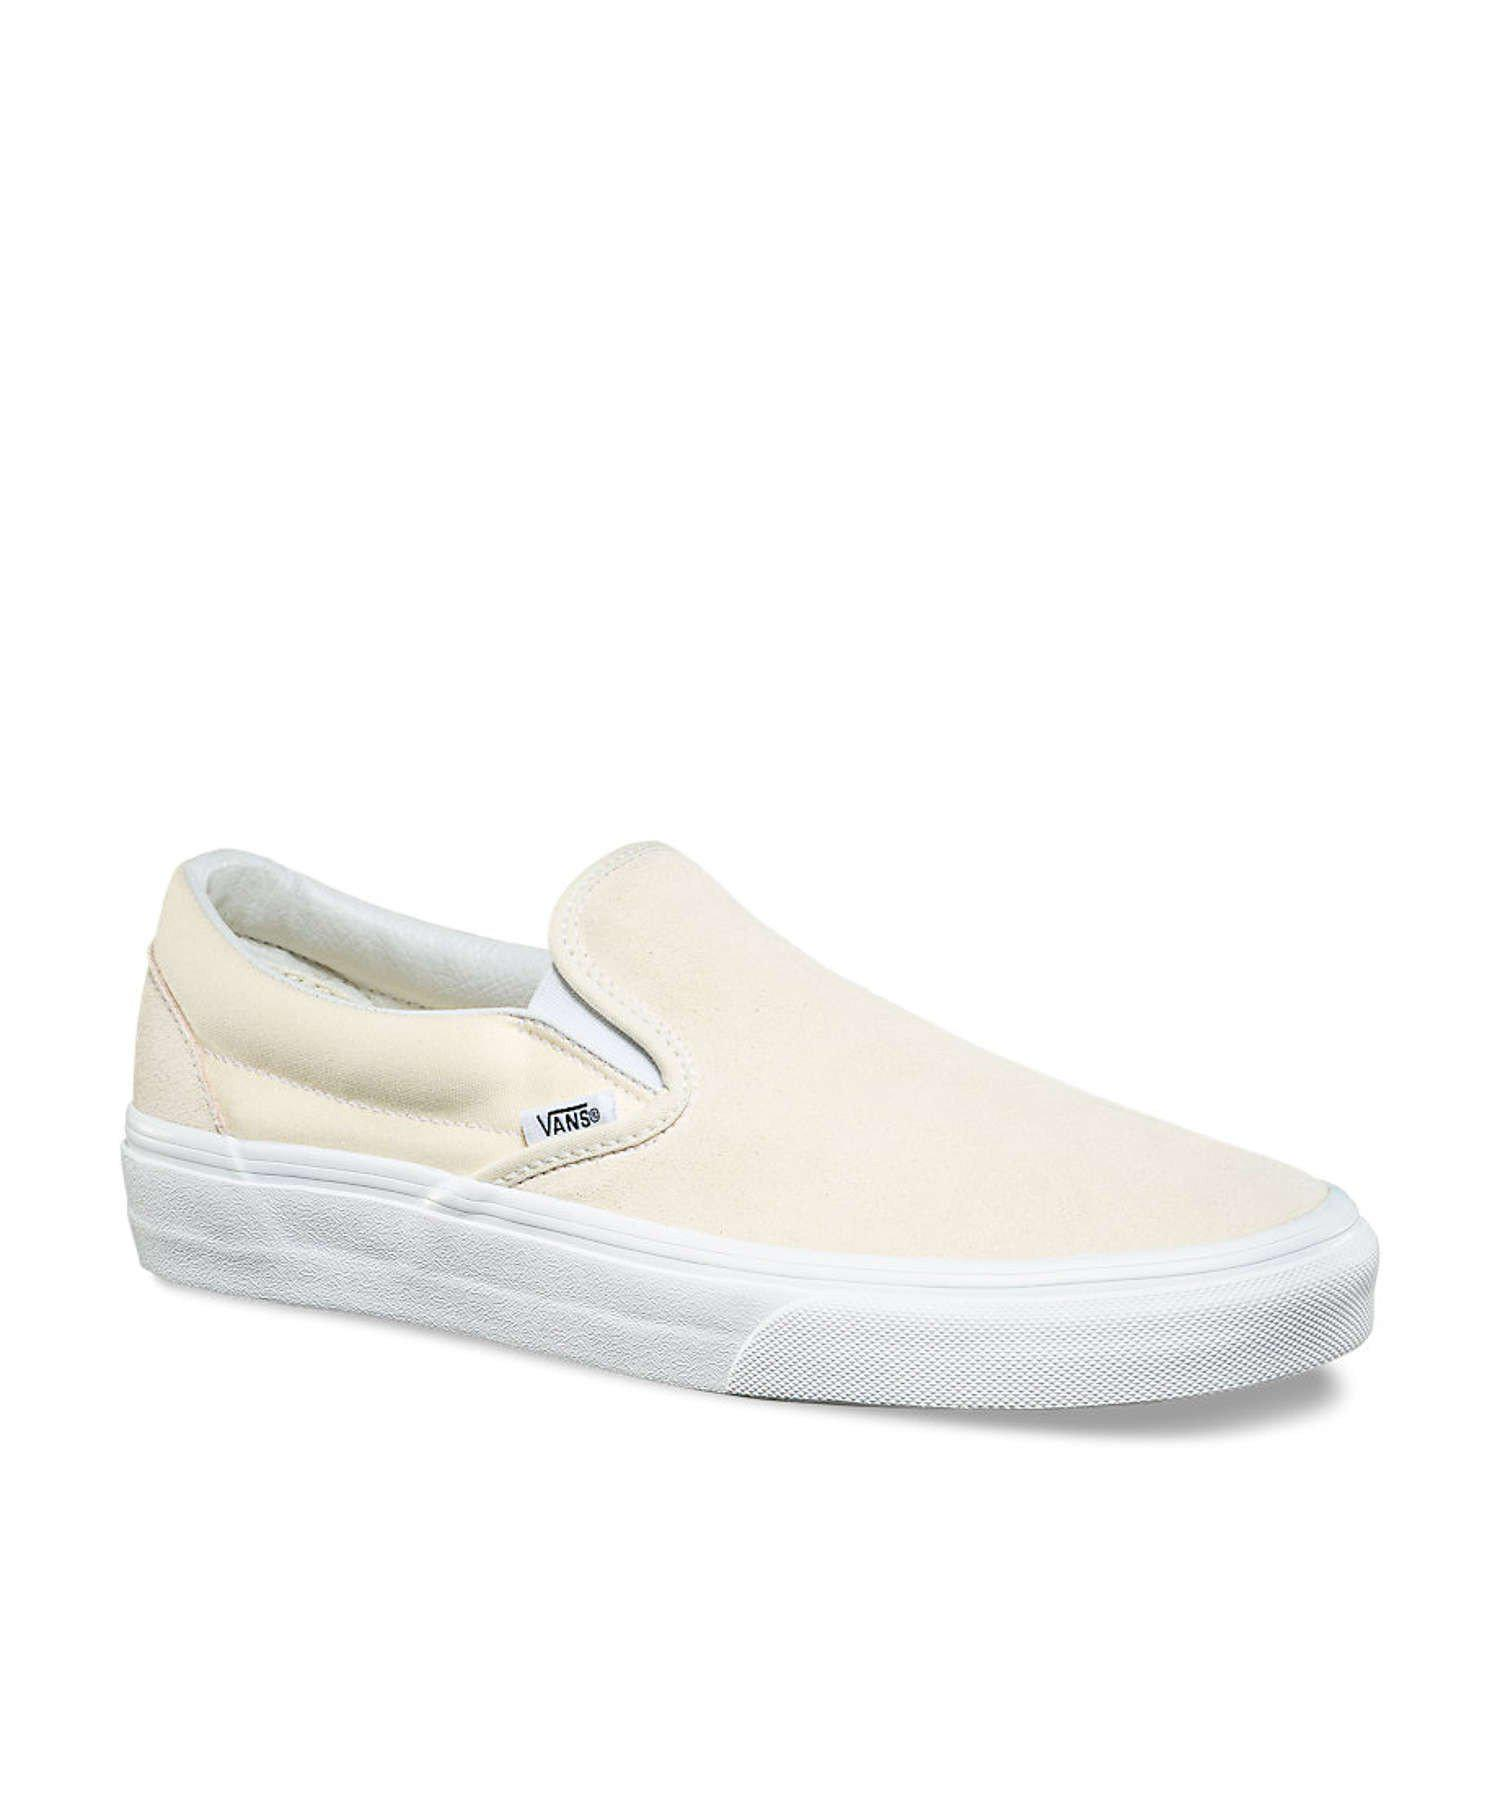 Vans Suede/canvas Classic Slip On In Afterglow In Cream